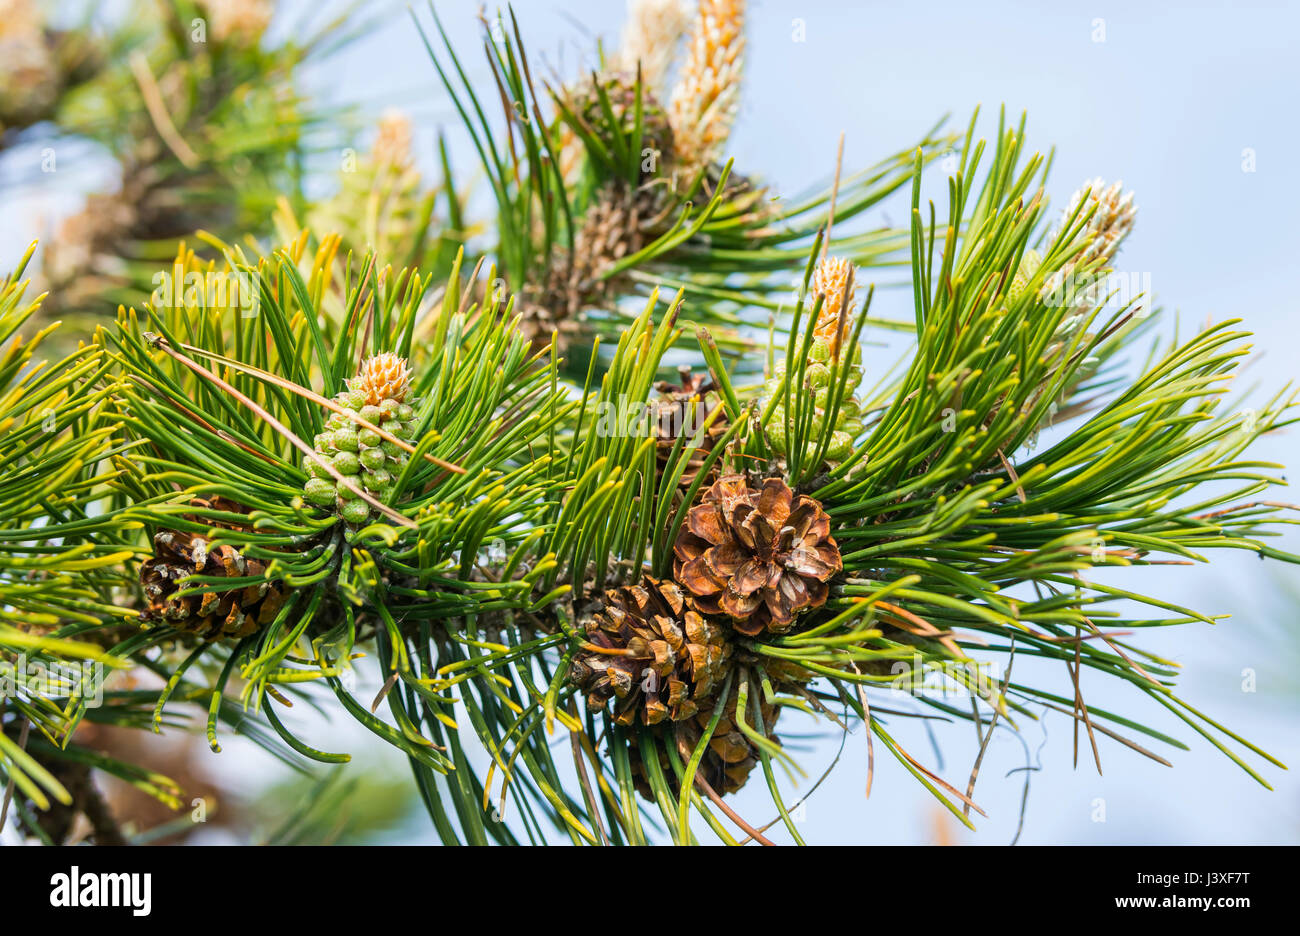 Closeup of pine cones of a branch of a Pine tree. - Stock Image